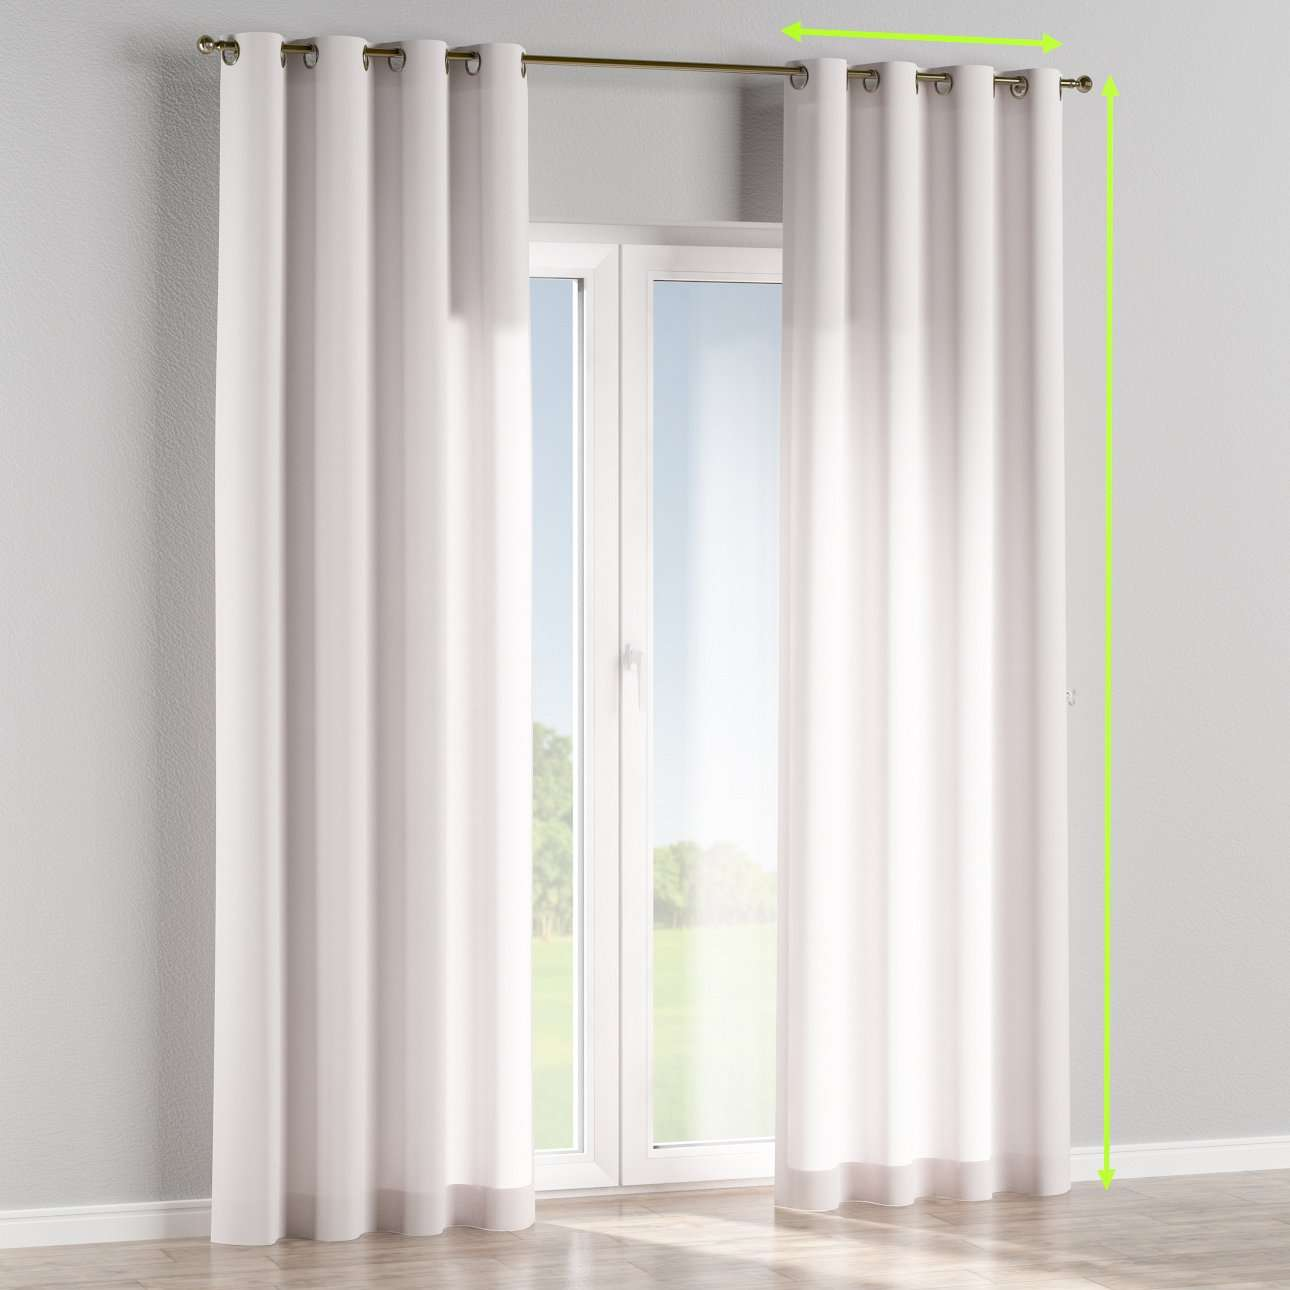 Eyelet curtains in collection Cotton Panama, fabric: 702-00